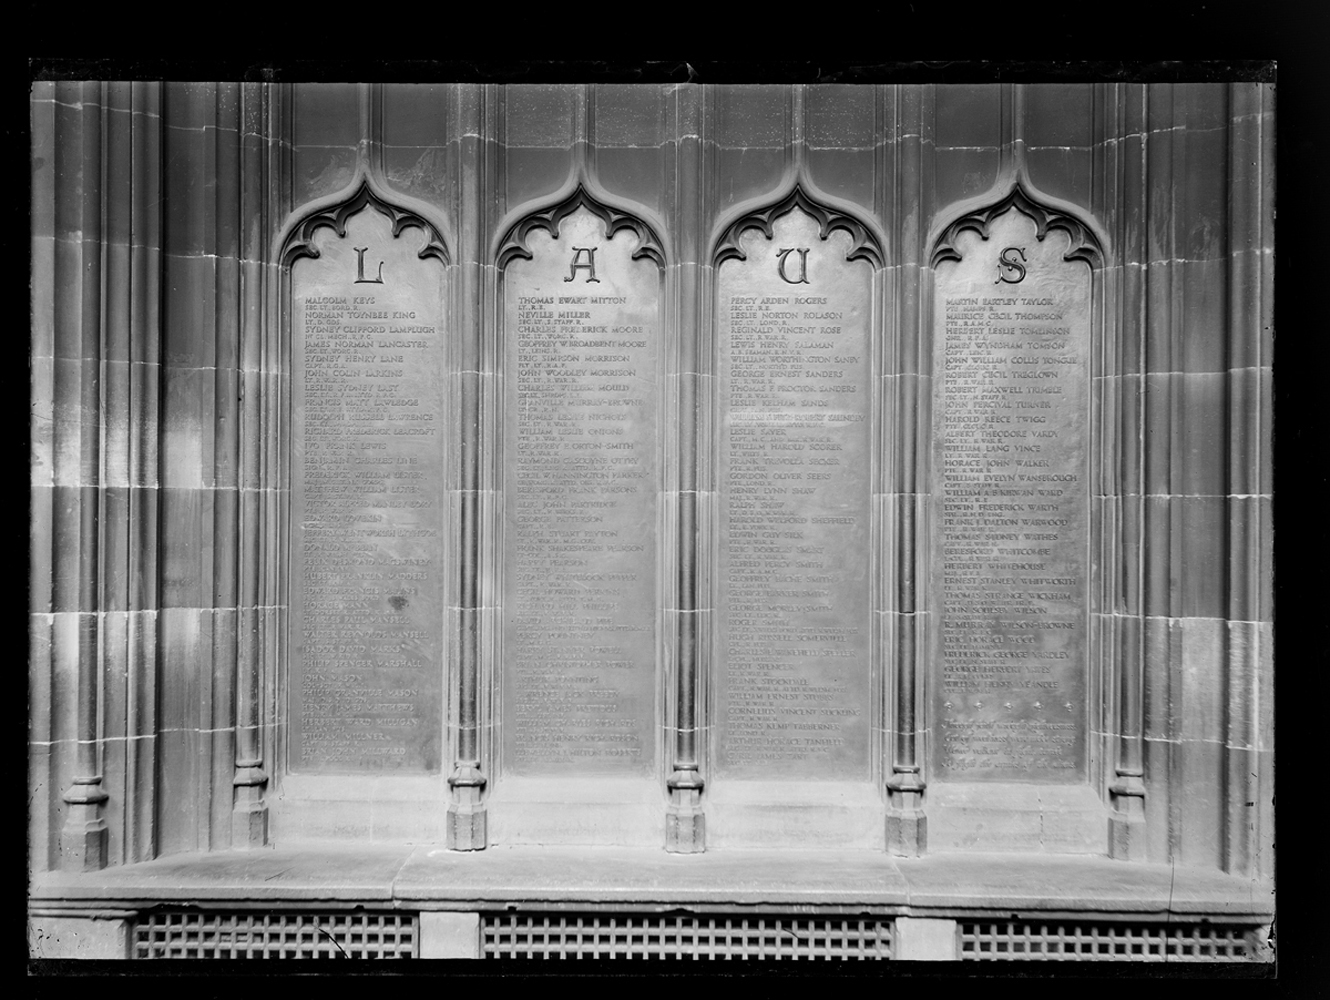 http://www.davidrowan.org/files/gimgs/54_ke-archive-large-plates---war-memorial-plaques.jpg